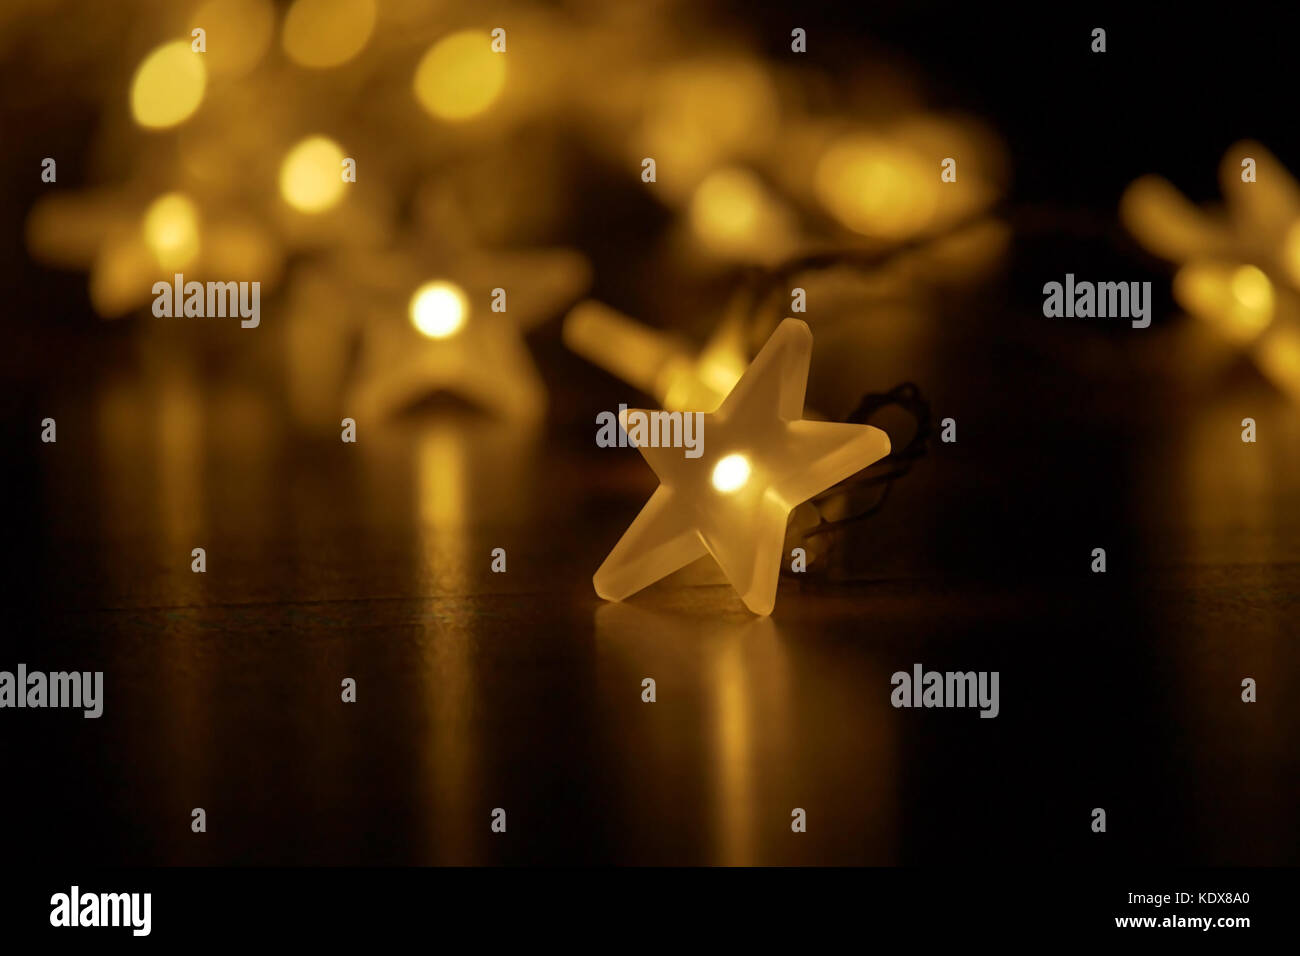 Blaze of lights with festively illuminated light chain; low depth of field on dark background with copy-space - Stock Image